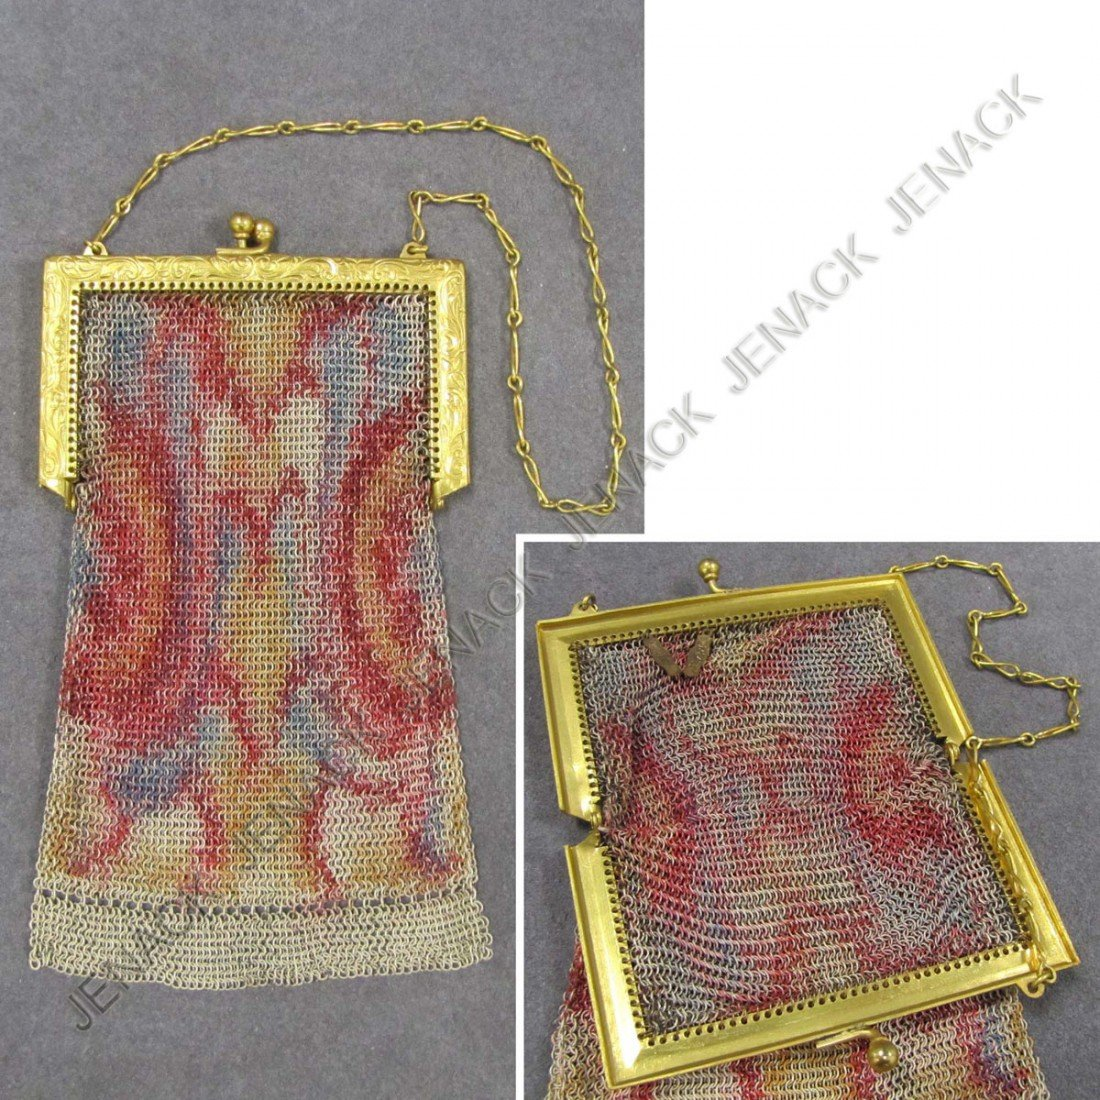 54: VINTAGE ART DECO STAINED MESH HAND BAG